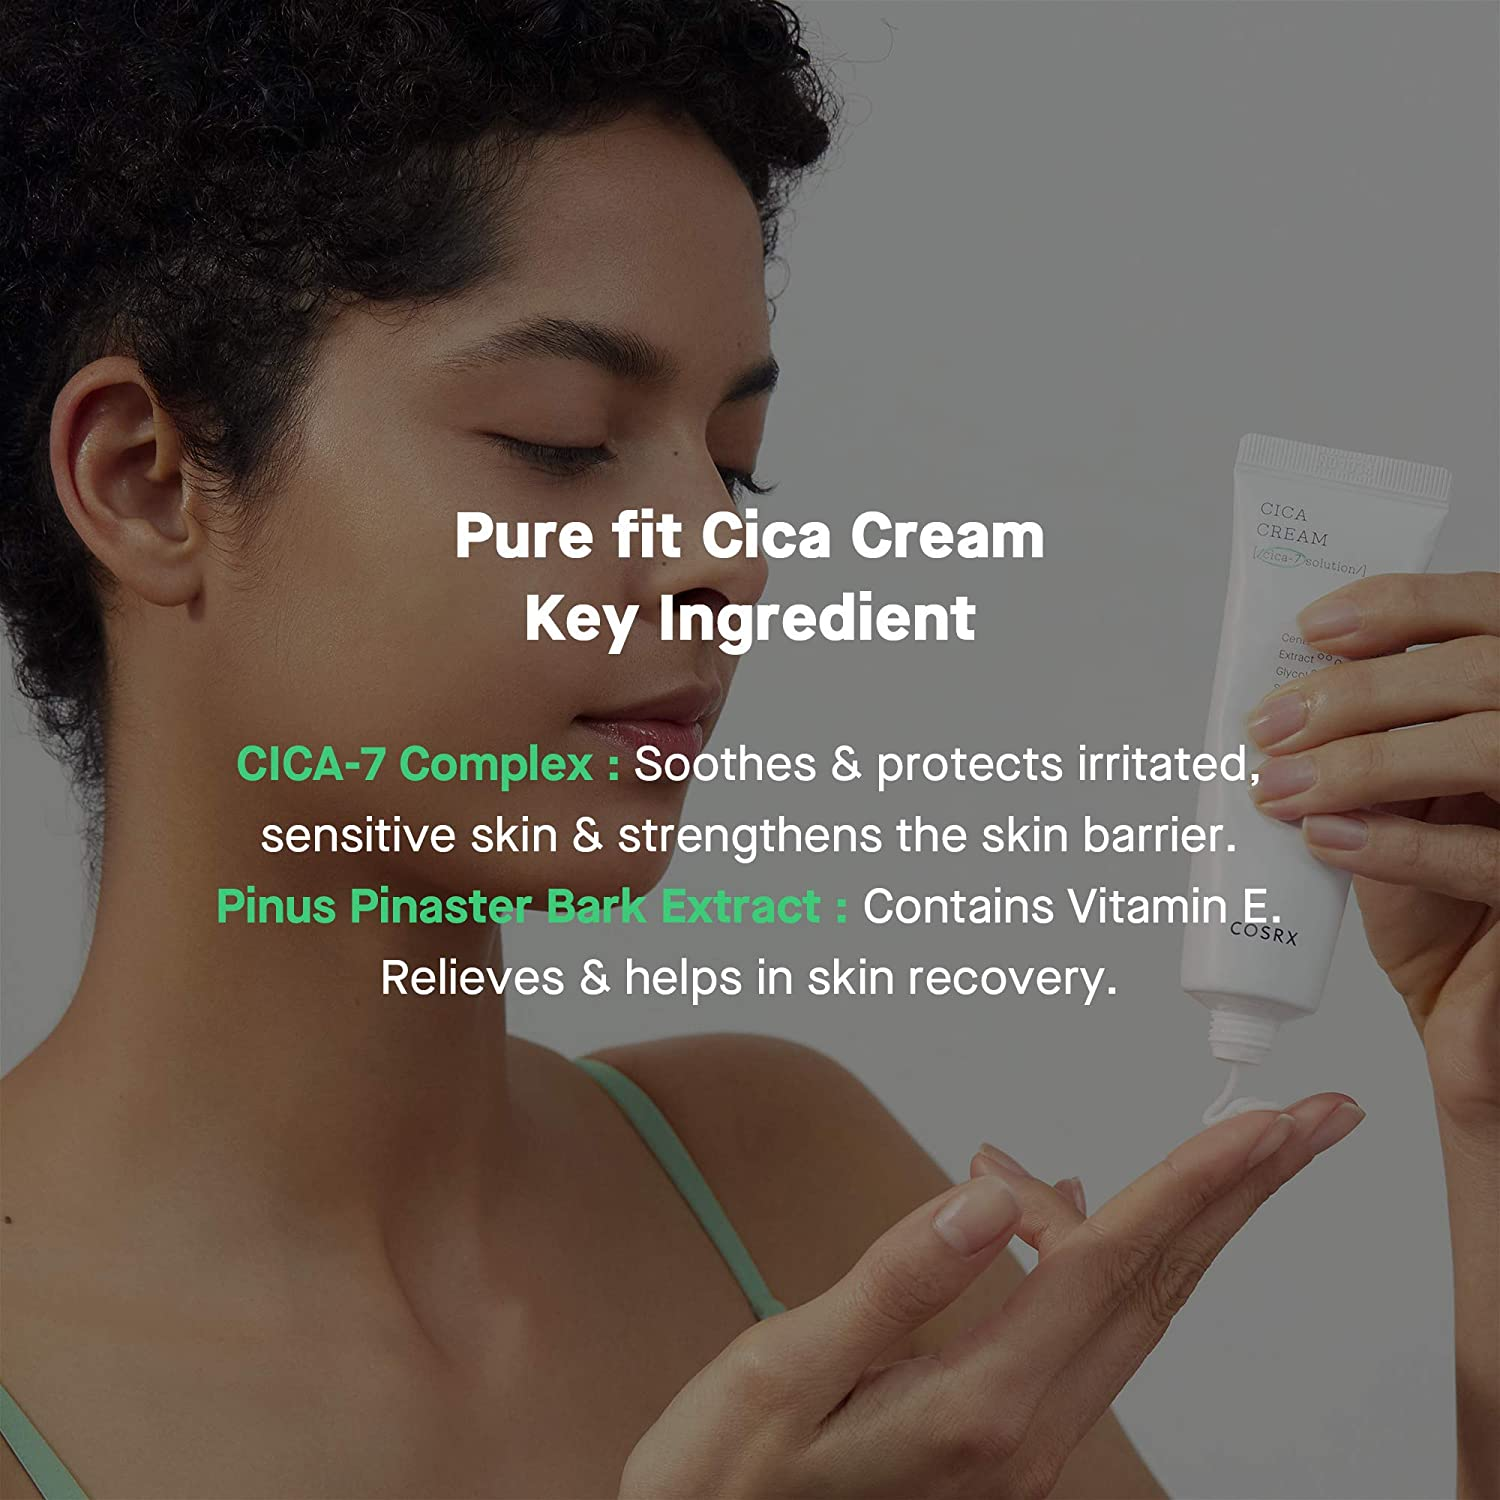 Amazon coupon code for COSRX Pure Fit Cica Cream